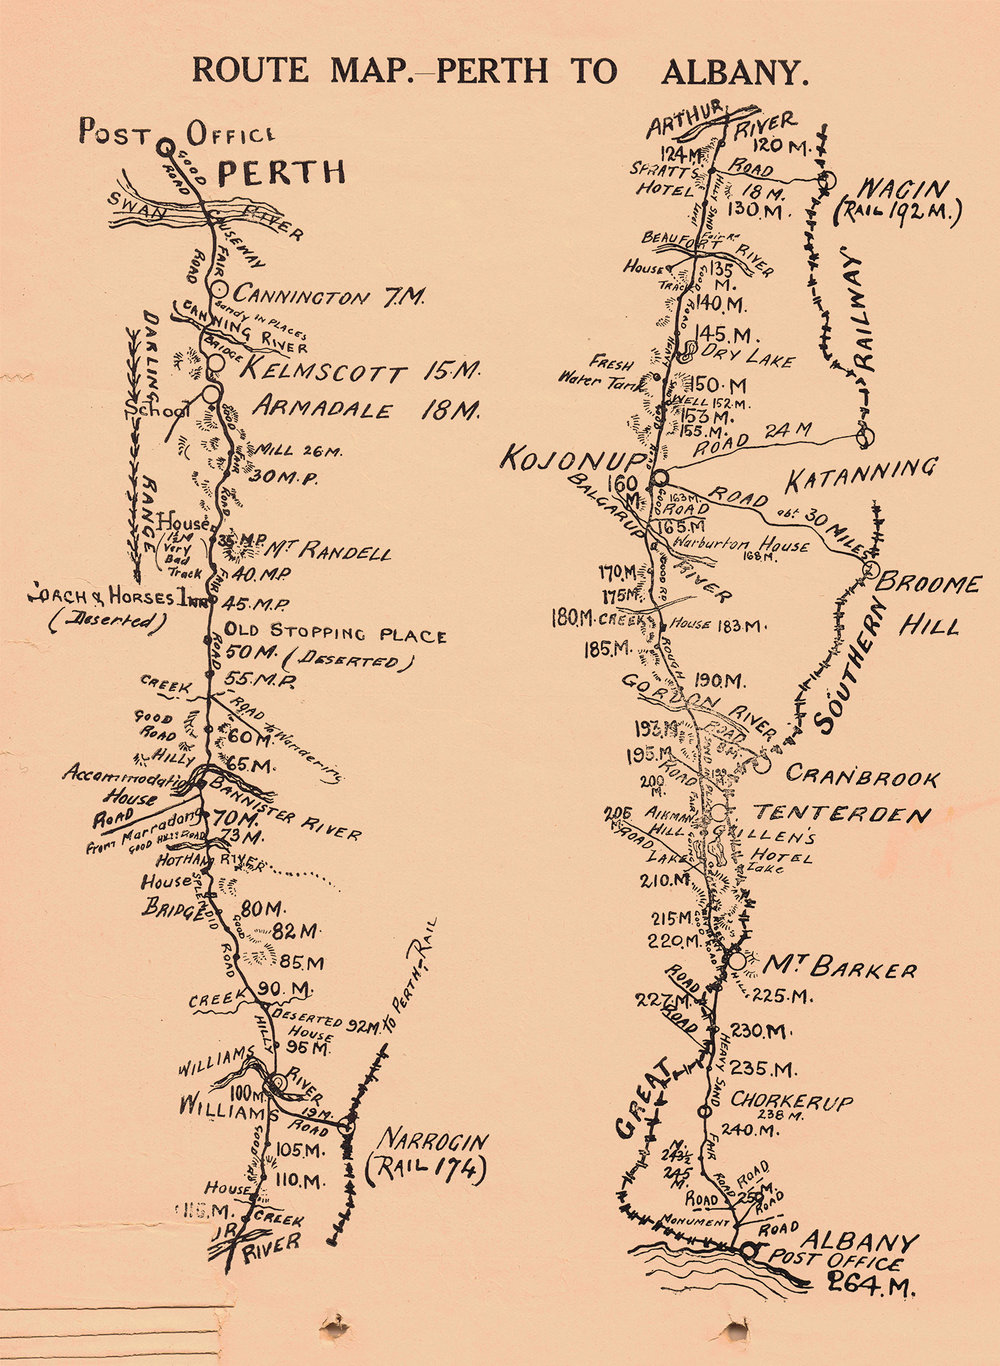 Route Map, Perth to Albany, from The Motor Car in Western Australia, 1908.